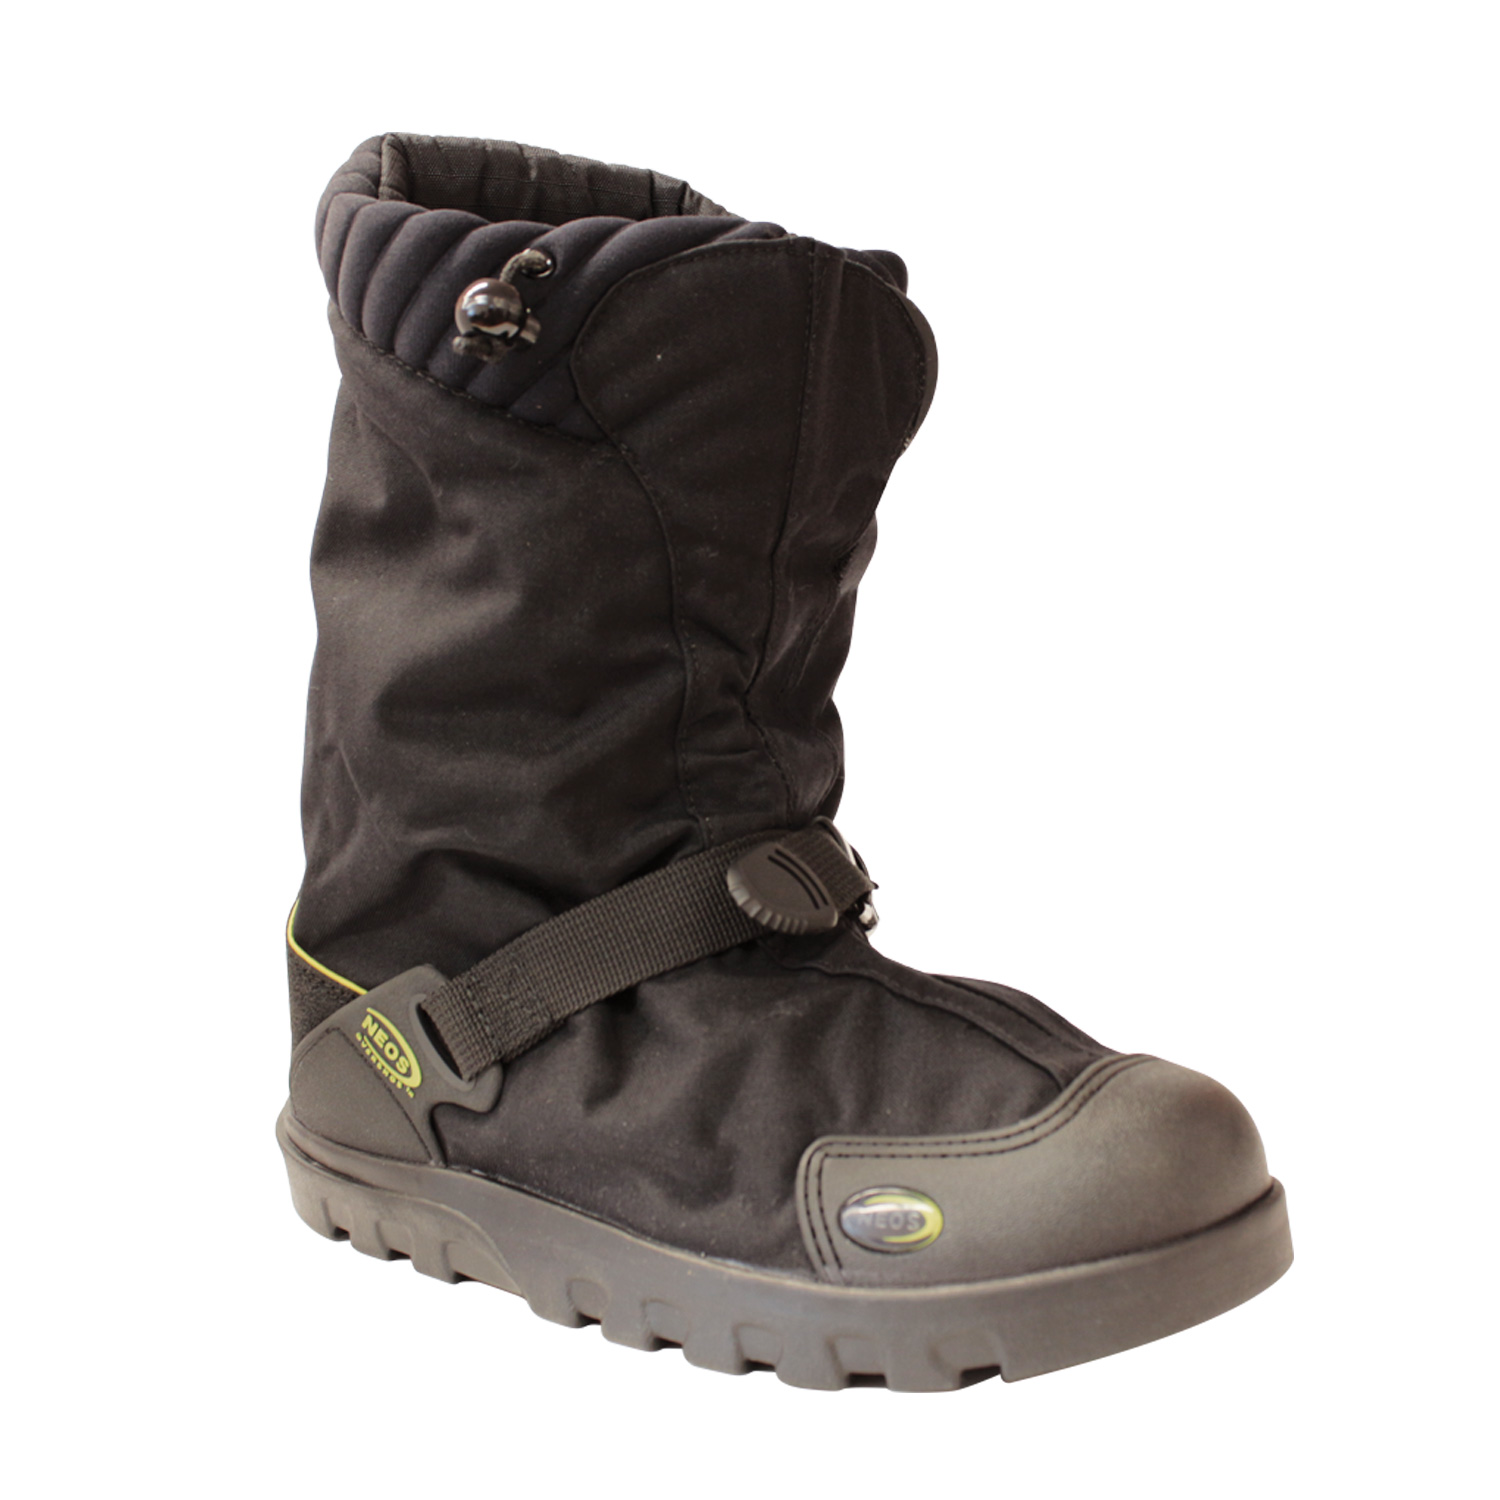 Couvre chaussures Explorer